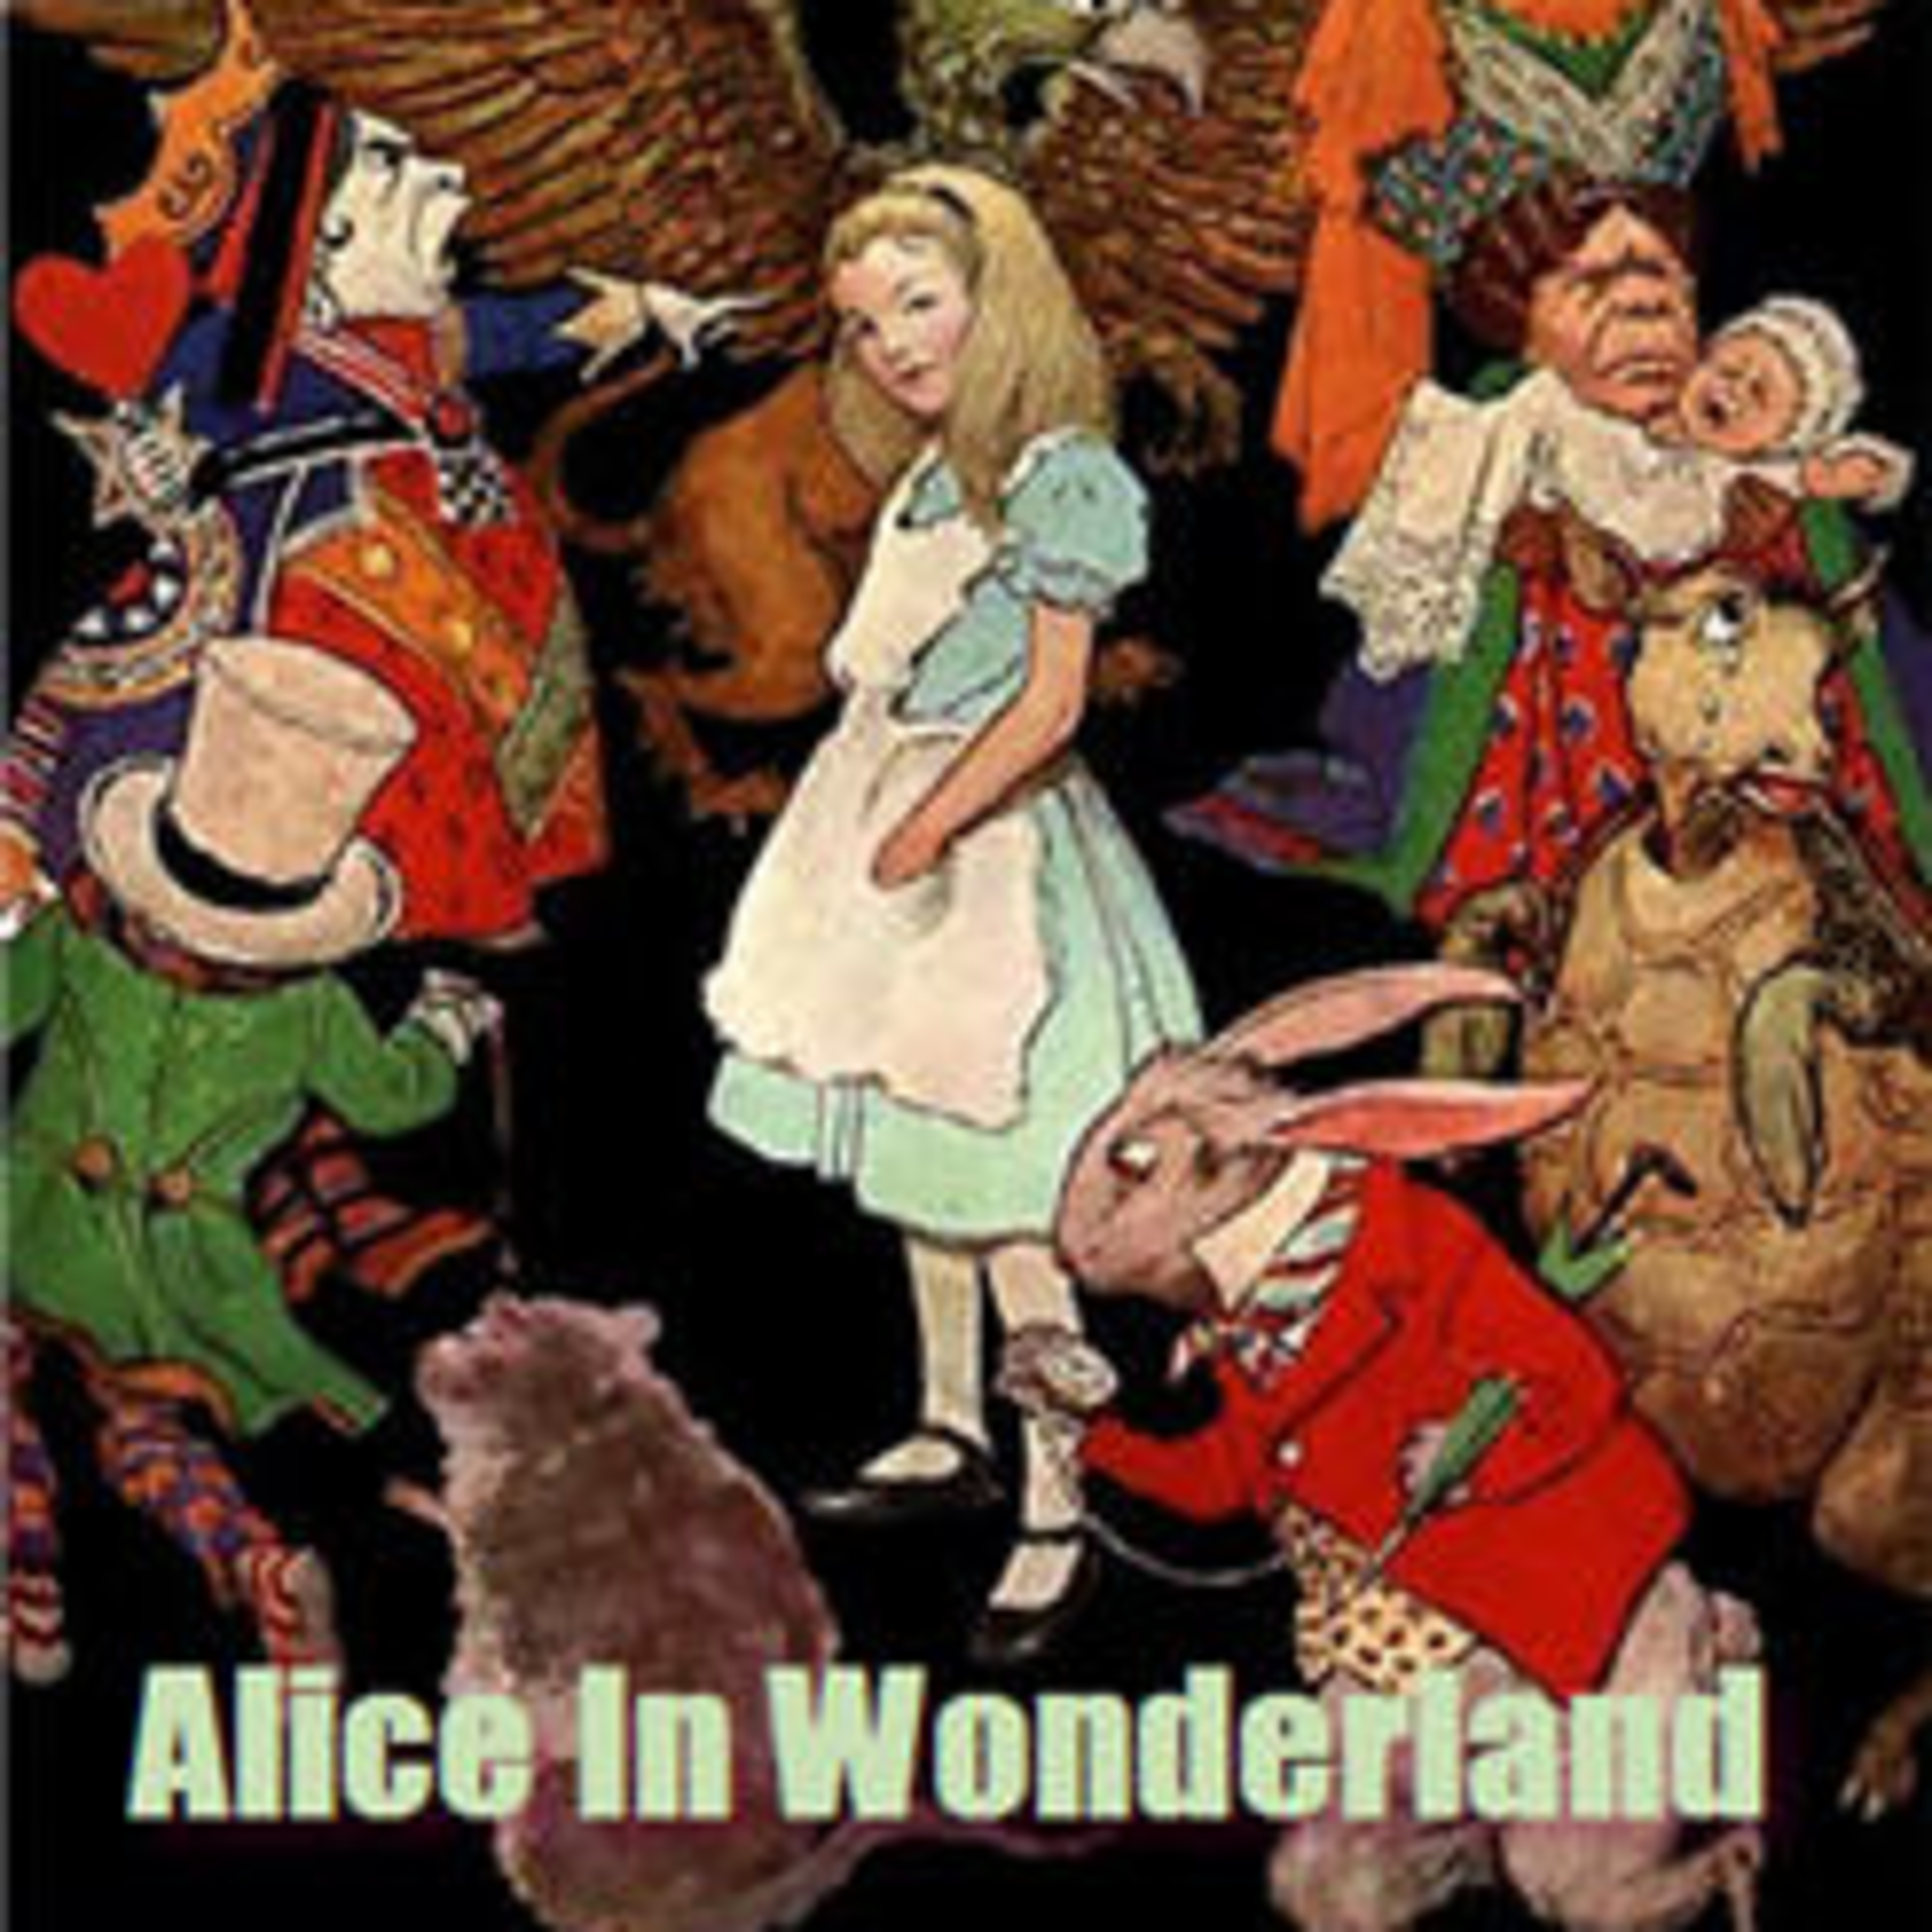 Alice in Wonderland - NBC Star Playhouse